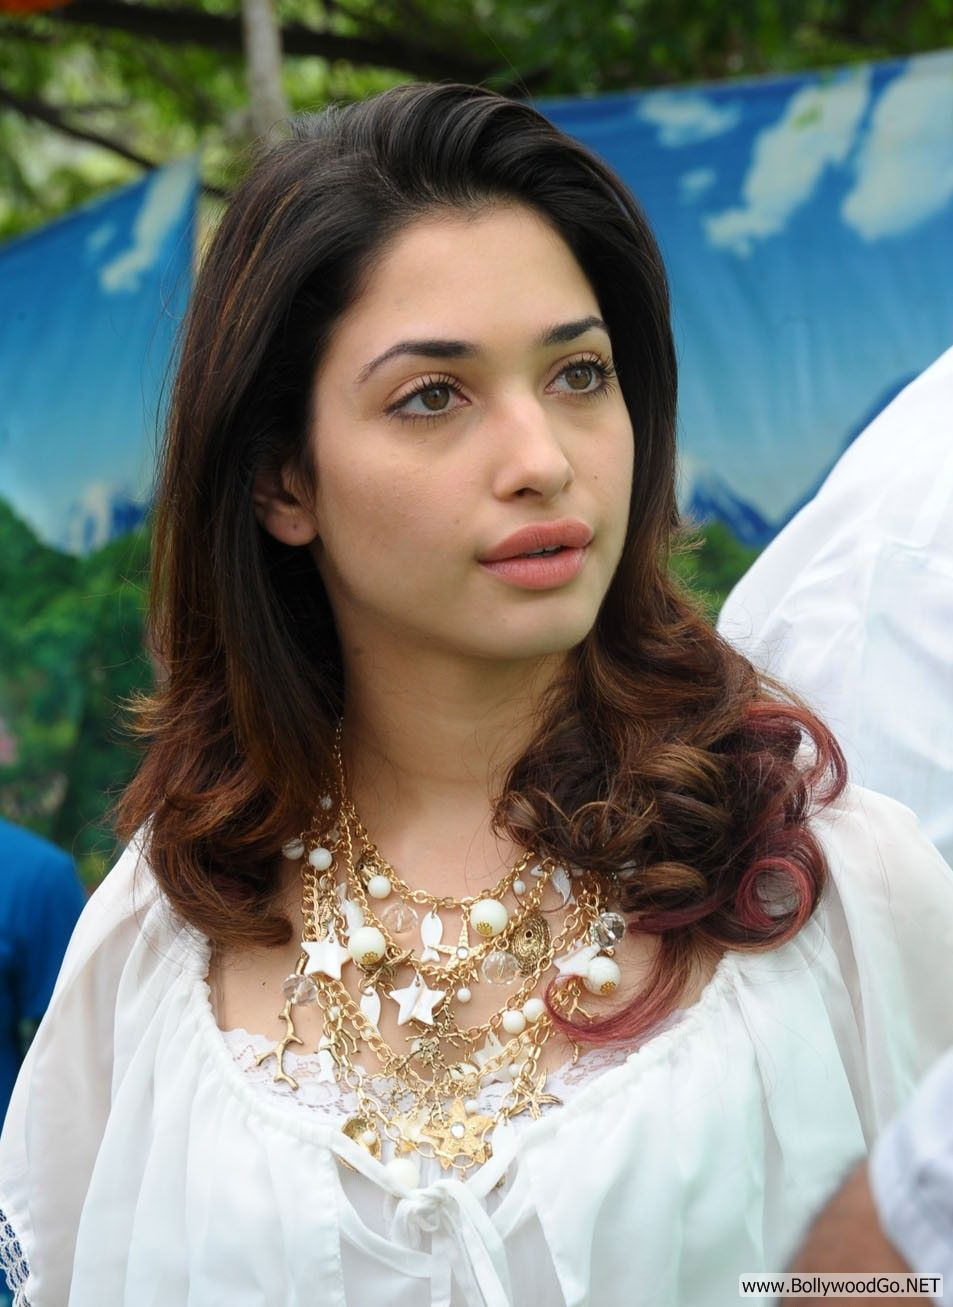 Tamanna Lips: New Beautiful Tamanna Pictures In Beautiful White Dress